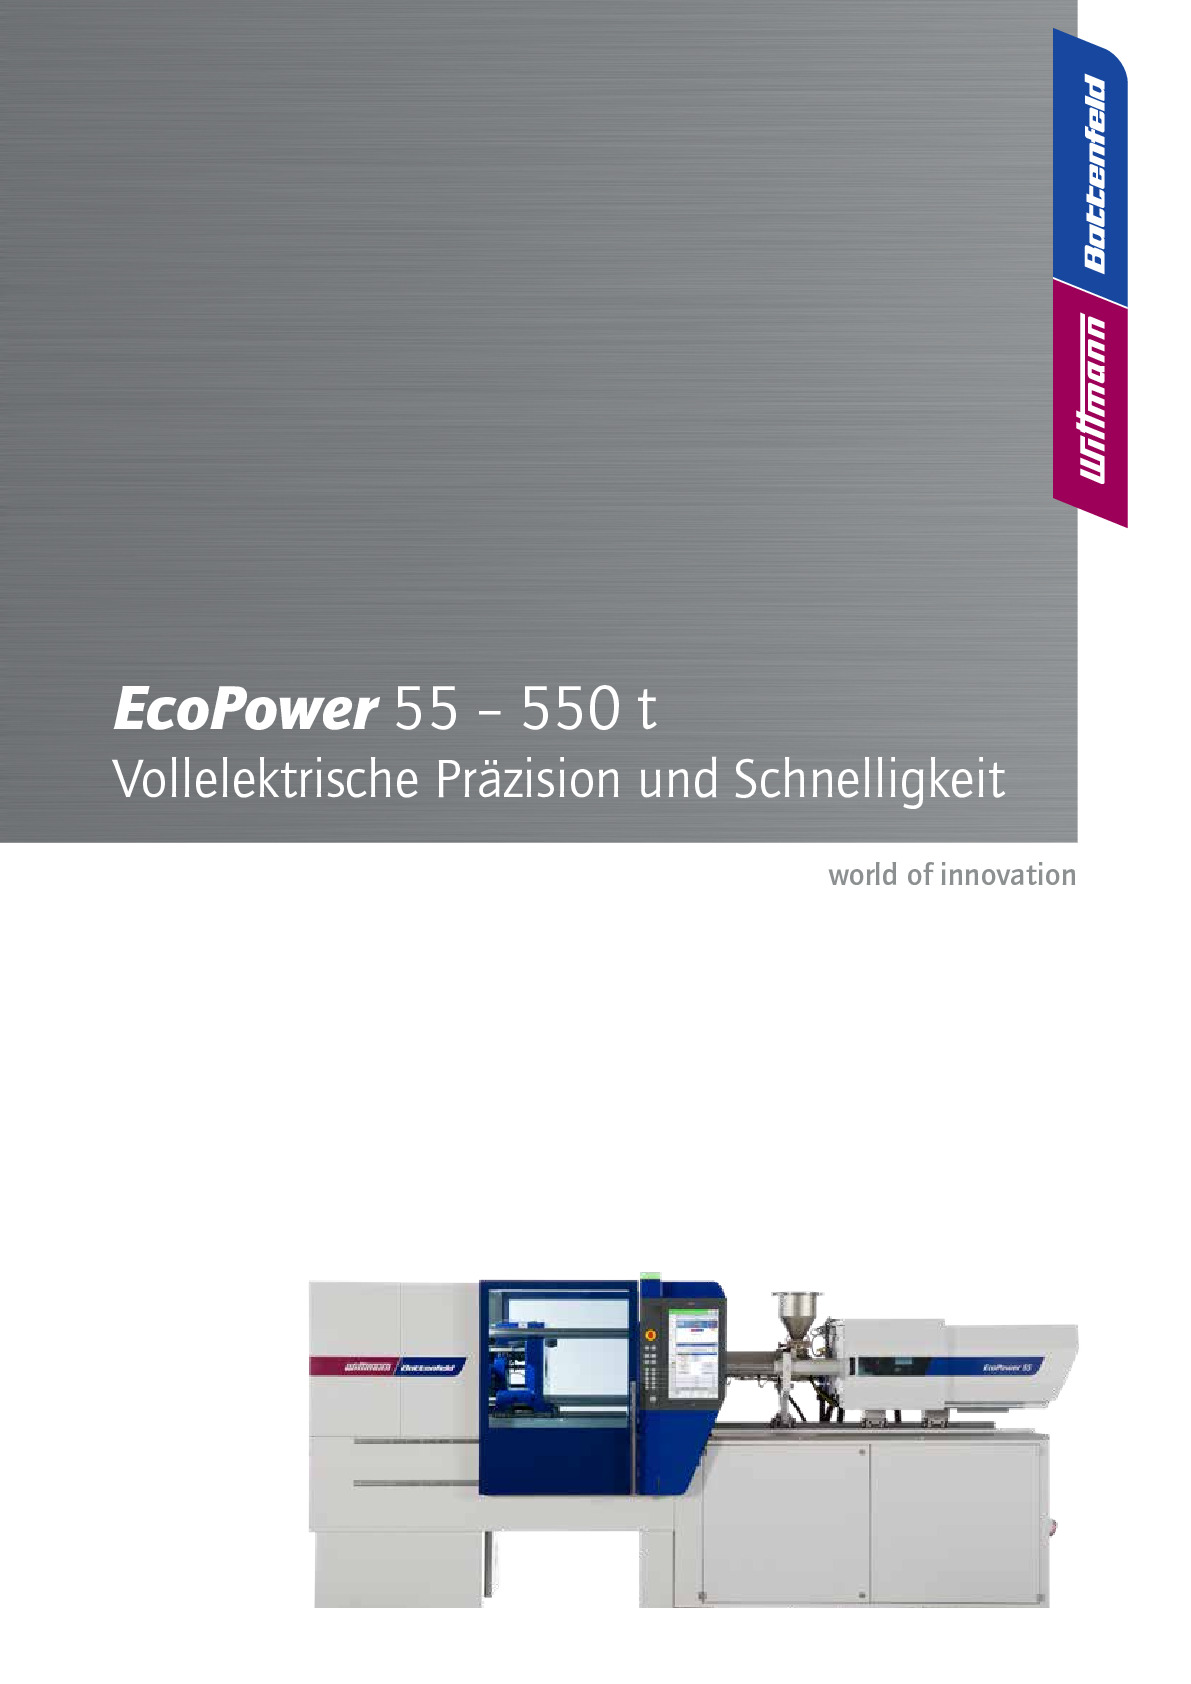 ecopower_de_2019-09_web